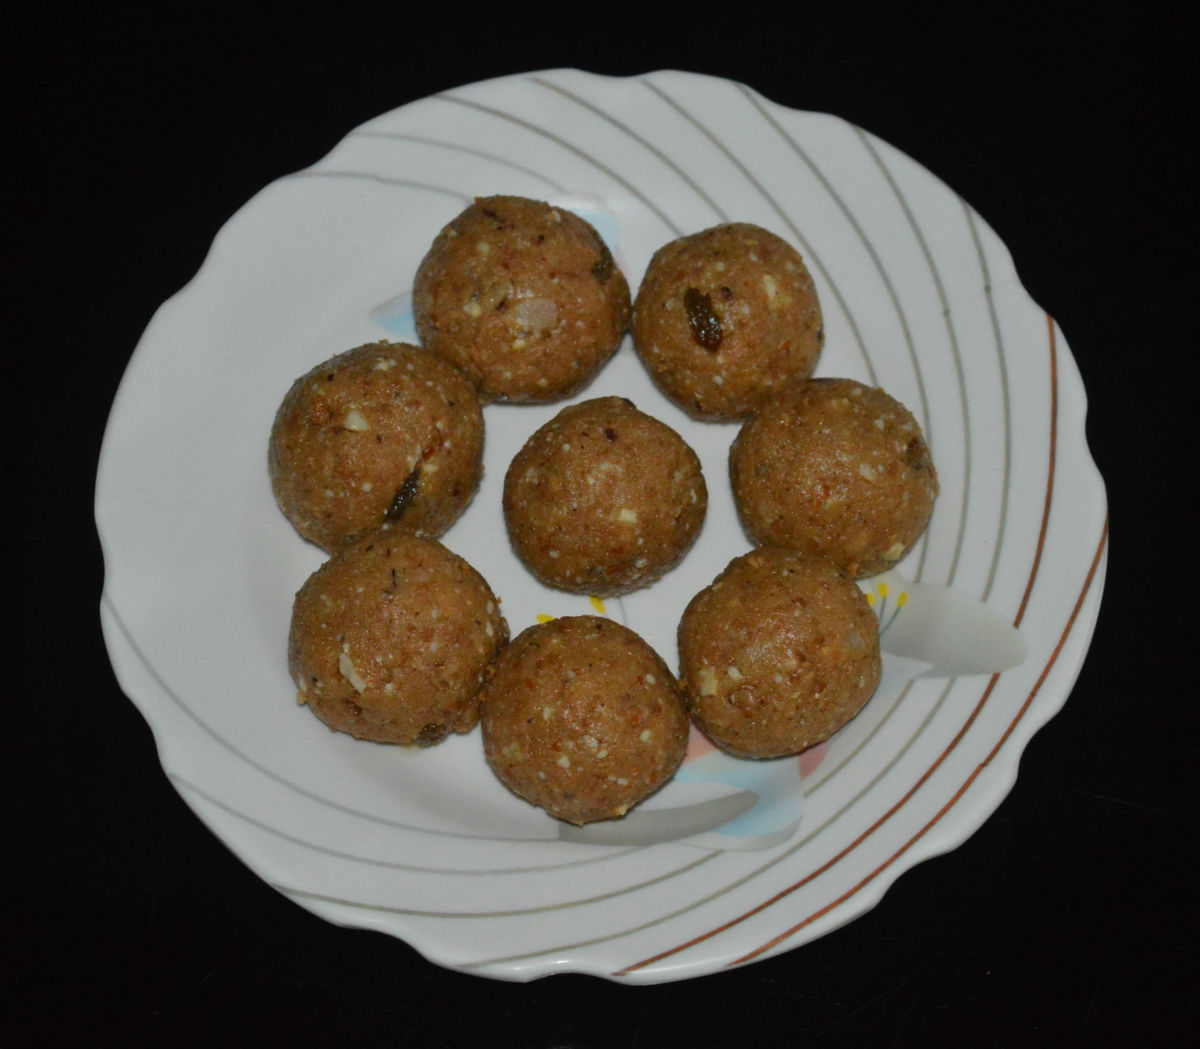 Indian Festival Sweets: Wheat Flour and Dry Fruits Laddu Recipe